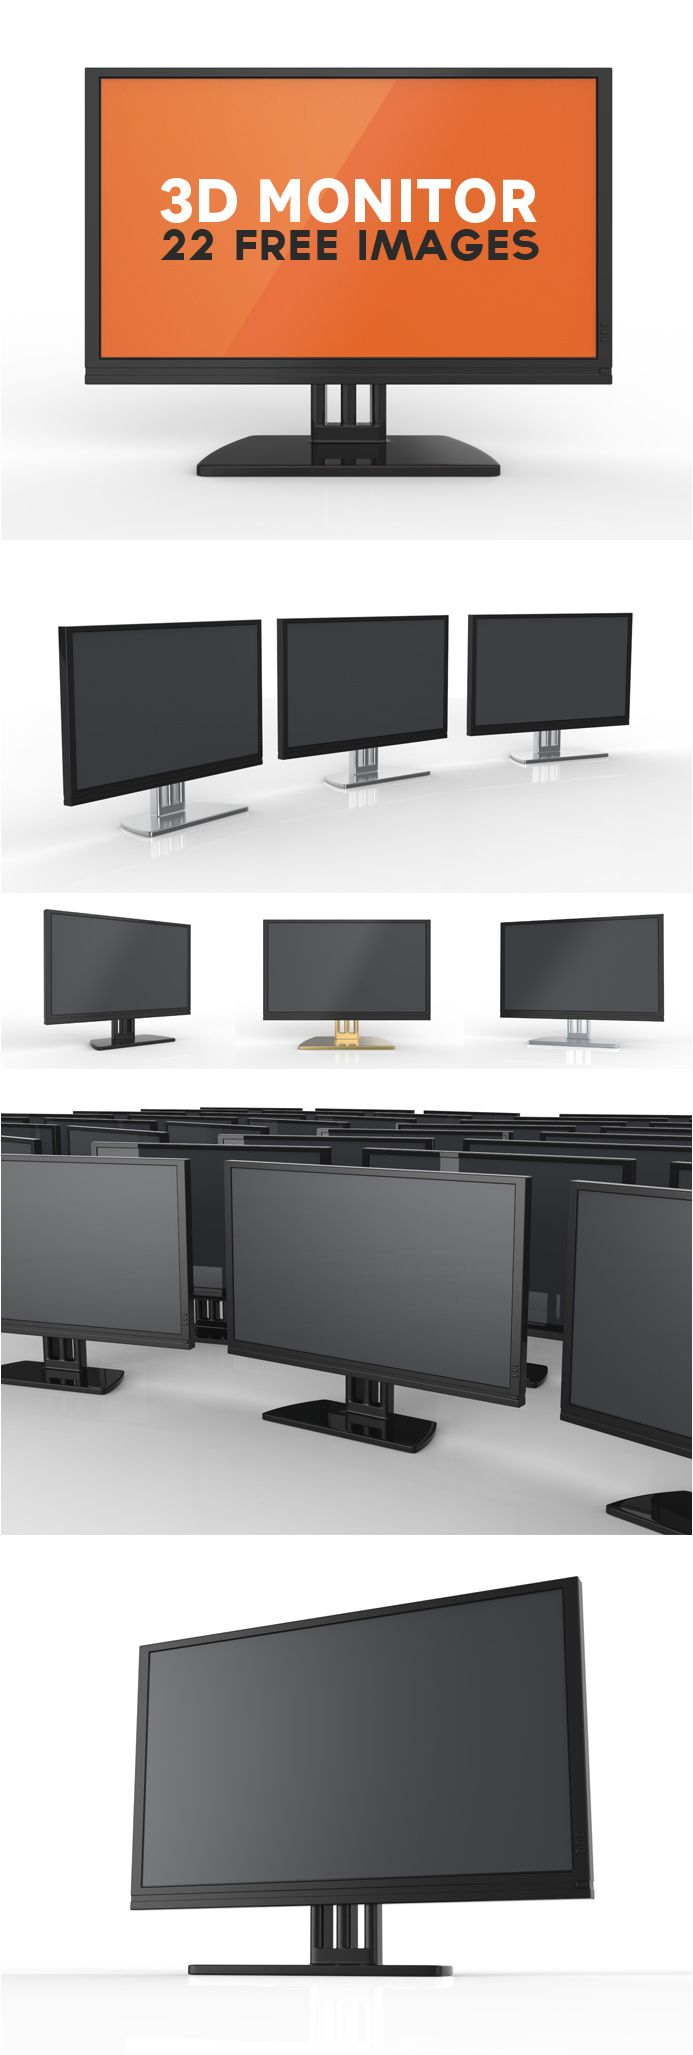 Free 3d Monitors Freebies Pinterest Mockup Design And Mockup